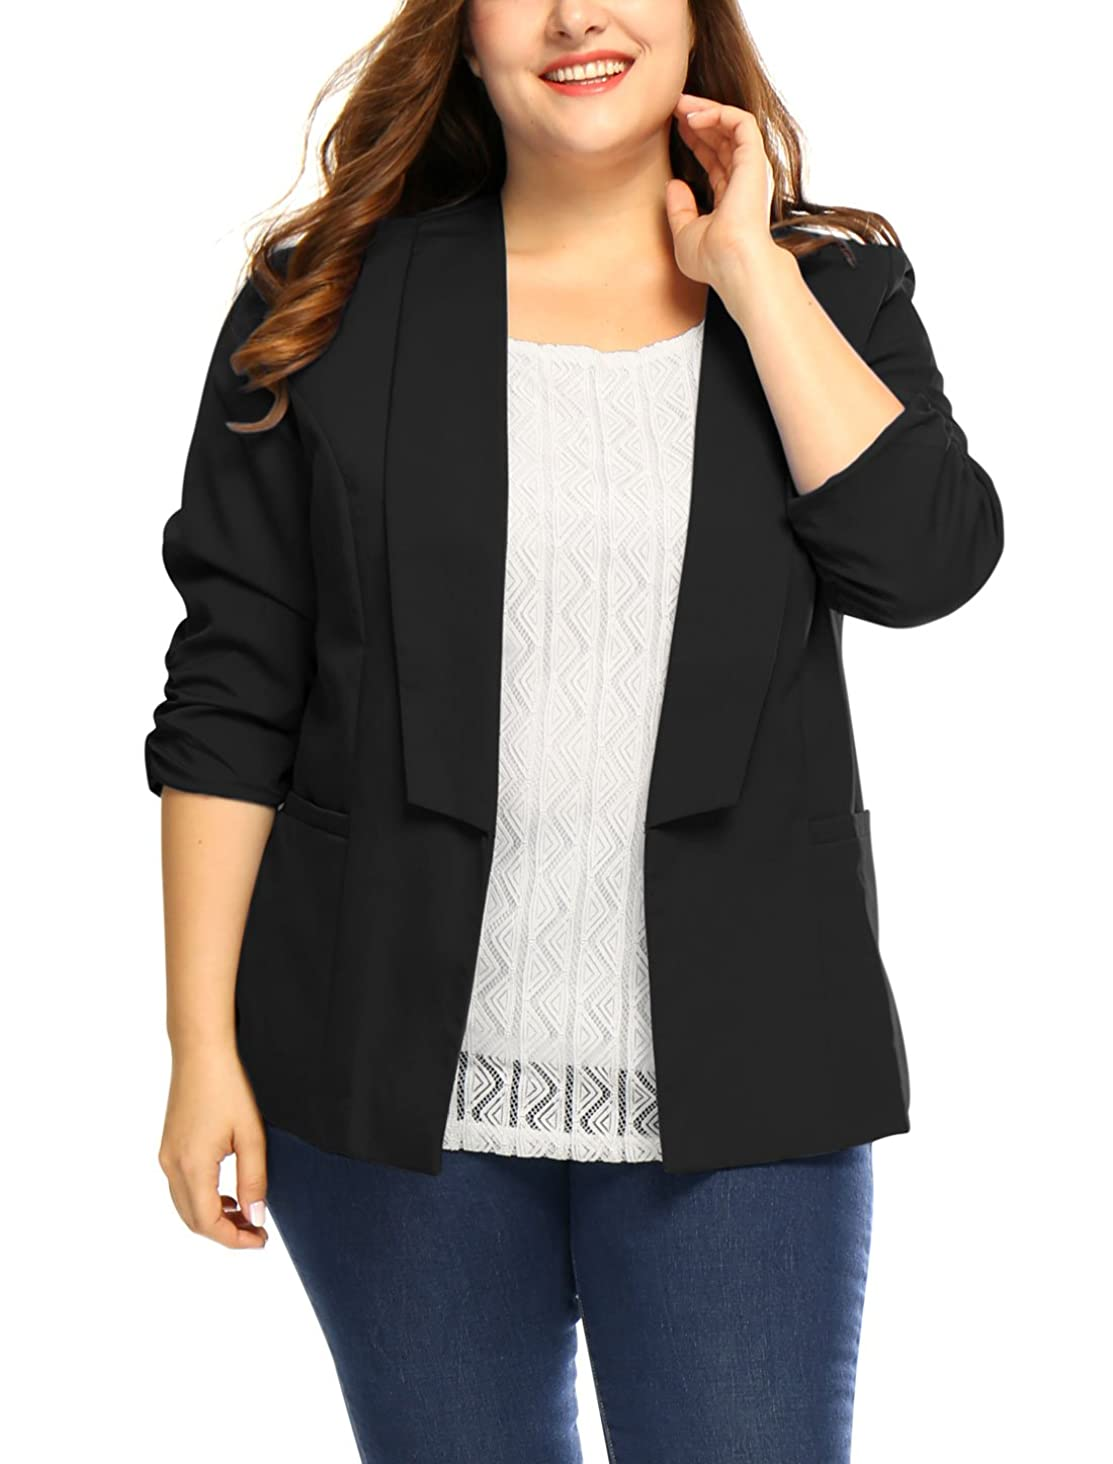 uxcell Women's Plus Size 3/4 Sleeves Shawl Collar Casual Blazer